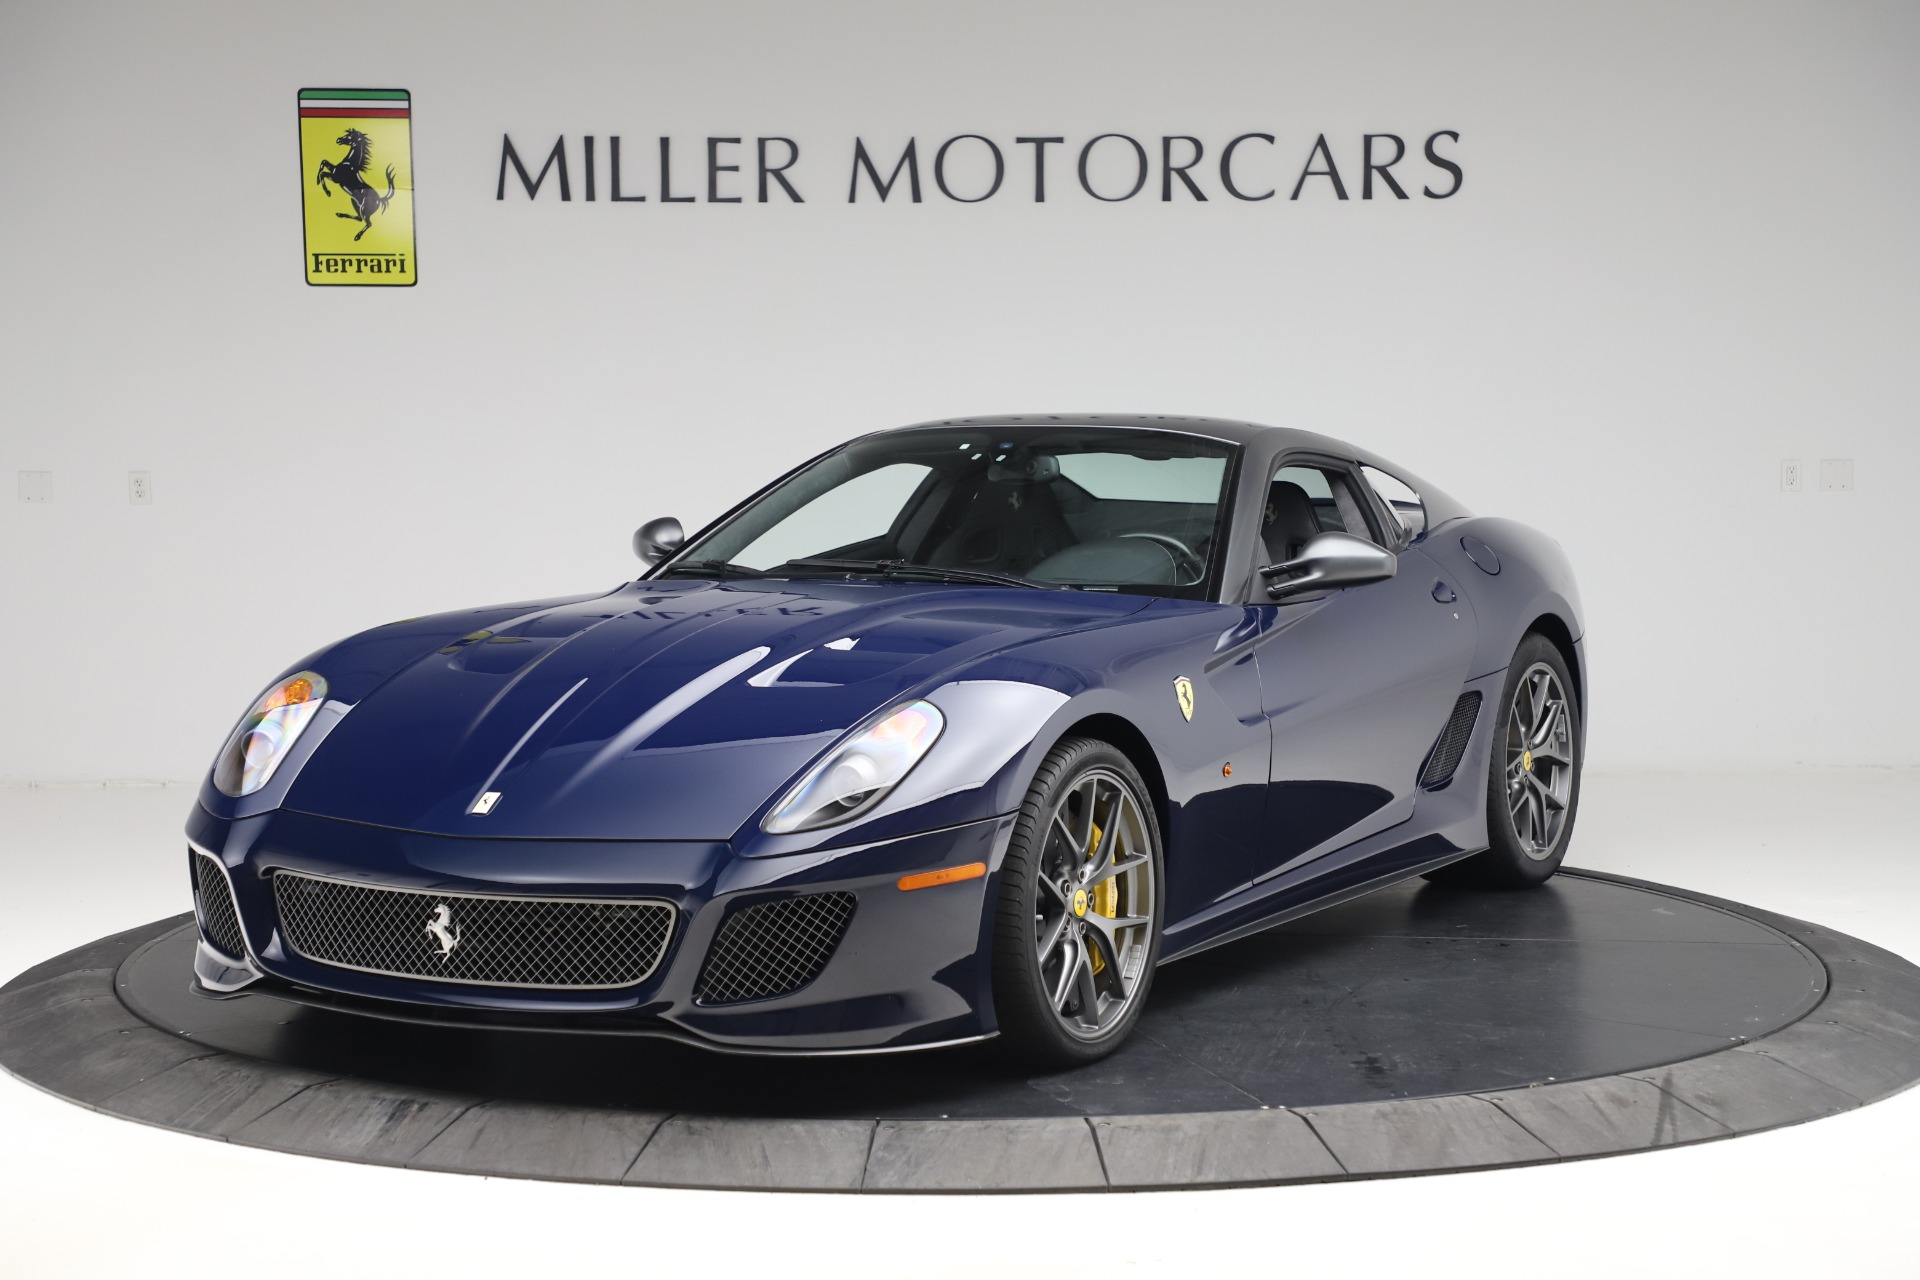 Used 2011 Ferrari 599 GTO for sale $565,900 at Rolls-Royce Motor Cars Greenwich in Greenwich CT 06830 1